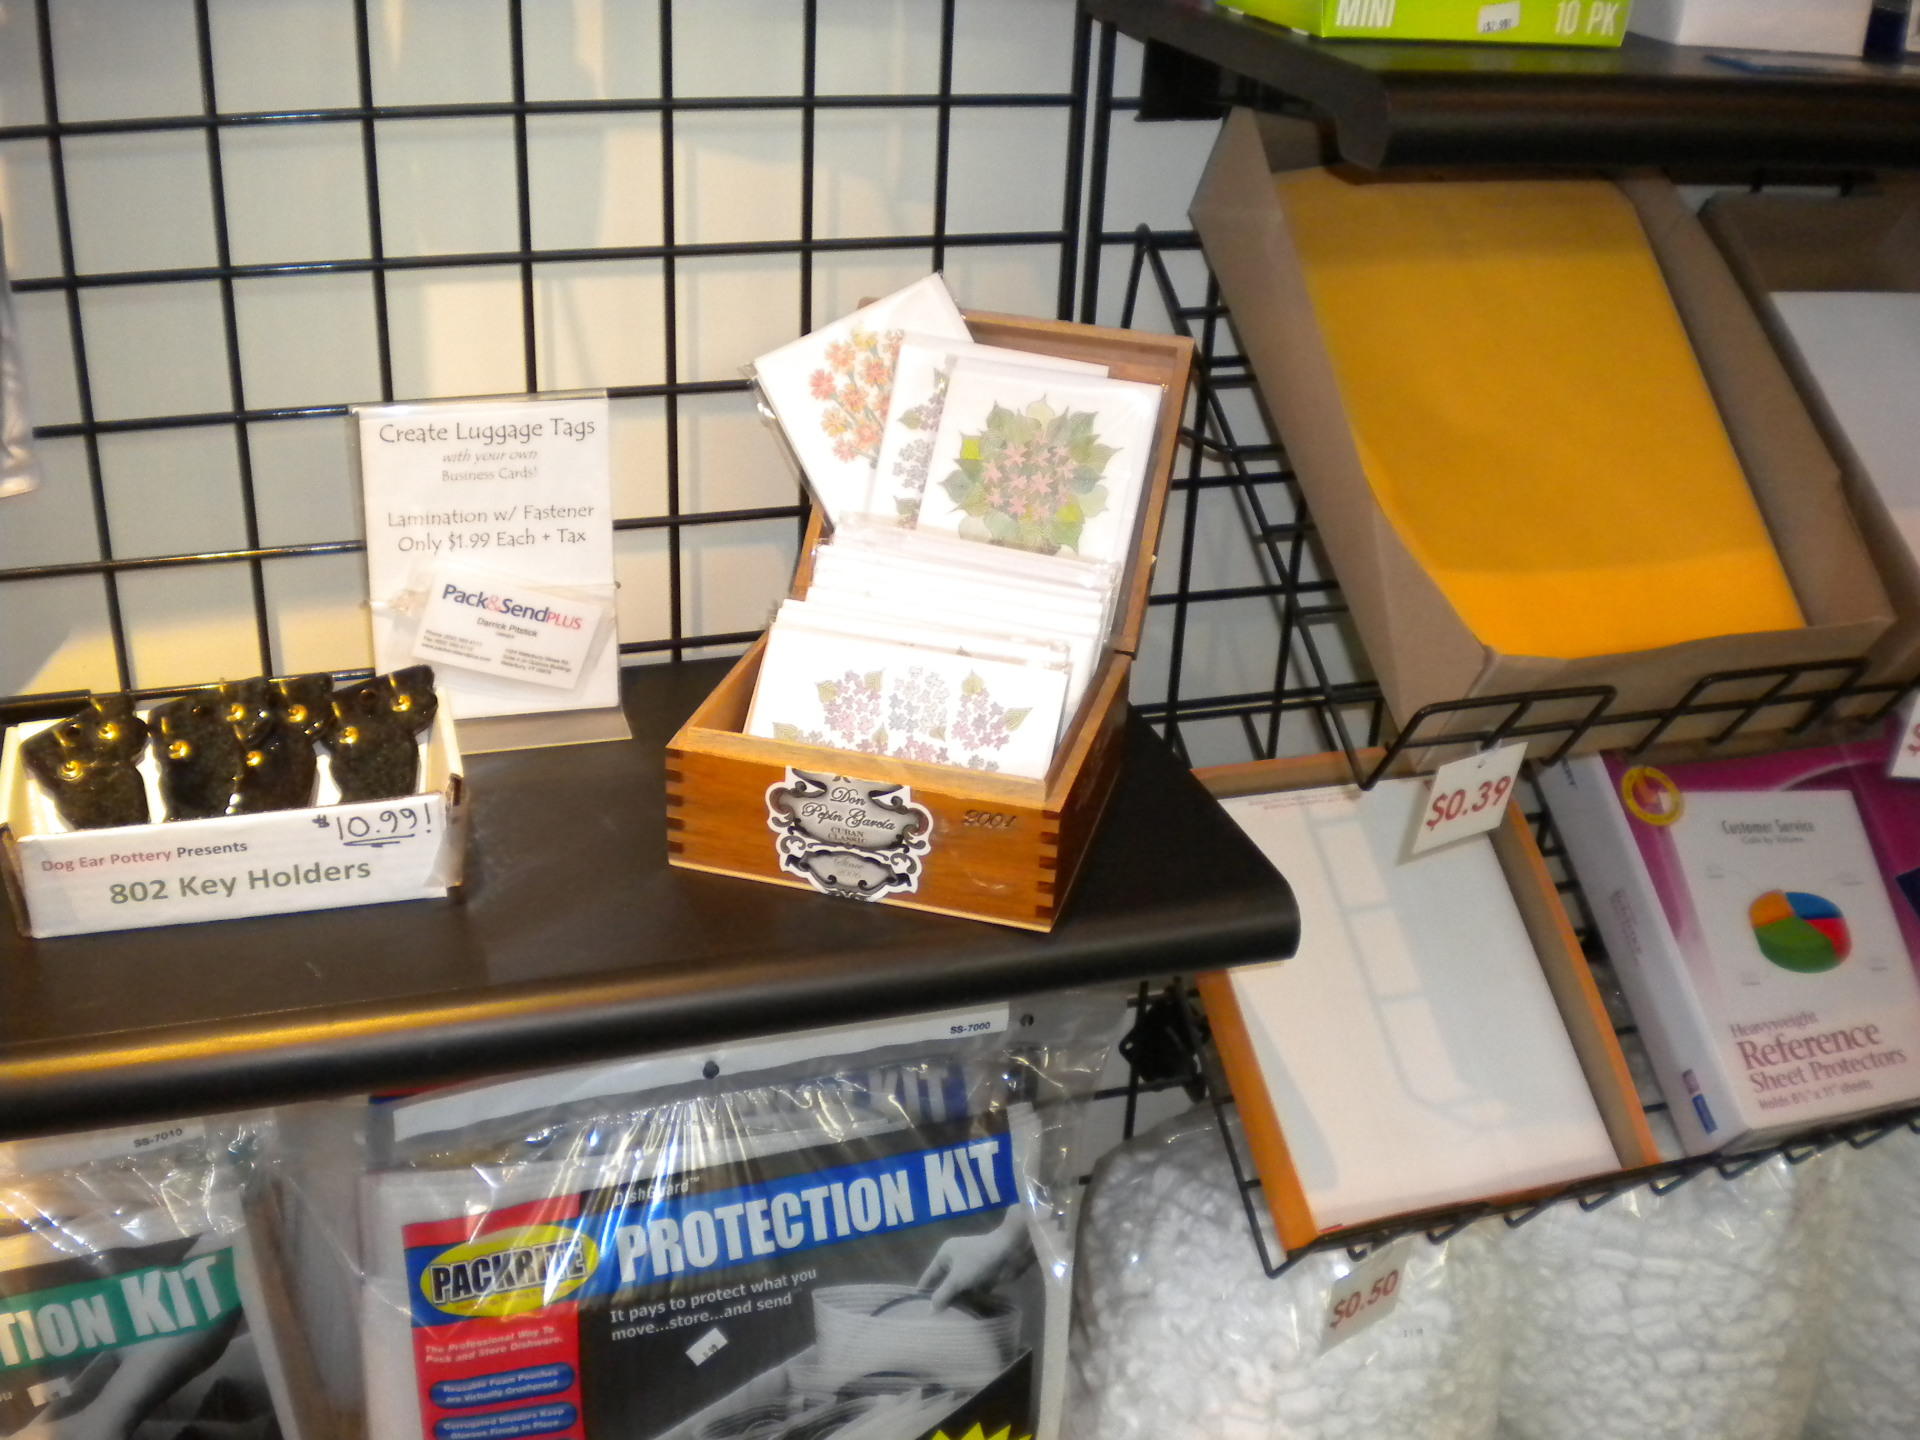 Photo of the display of Infinity Art Cards and the Pack & Send Plus in Waterbury VT.